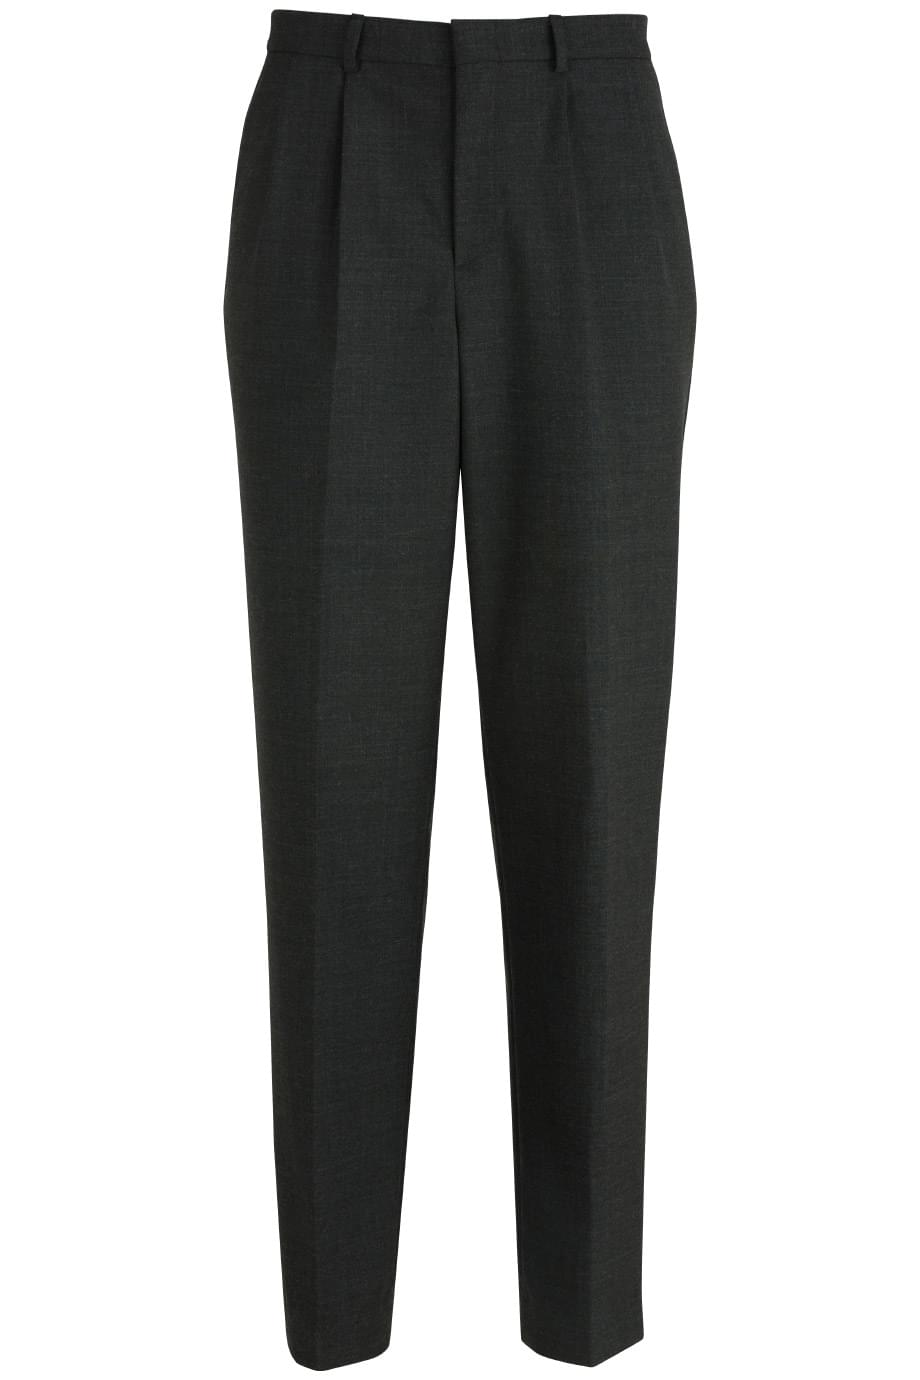 REDWOOD & ROSS® SIGNATURE EZ FIT DRESS PANT